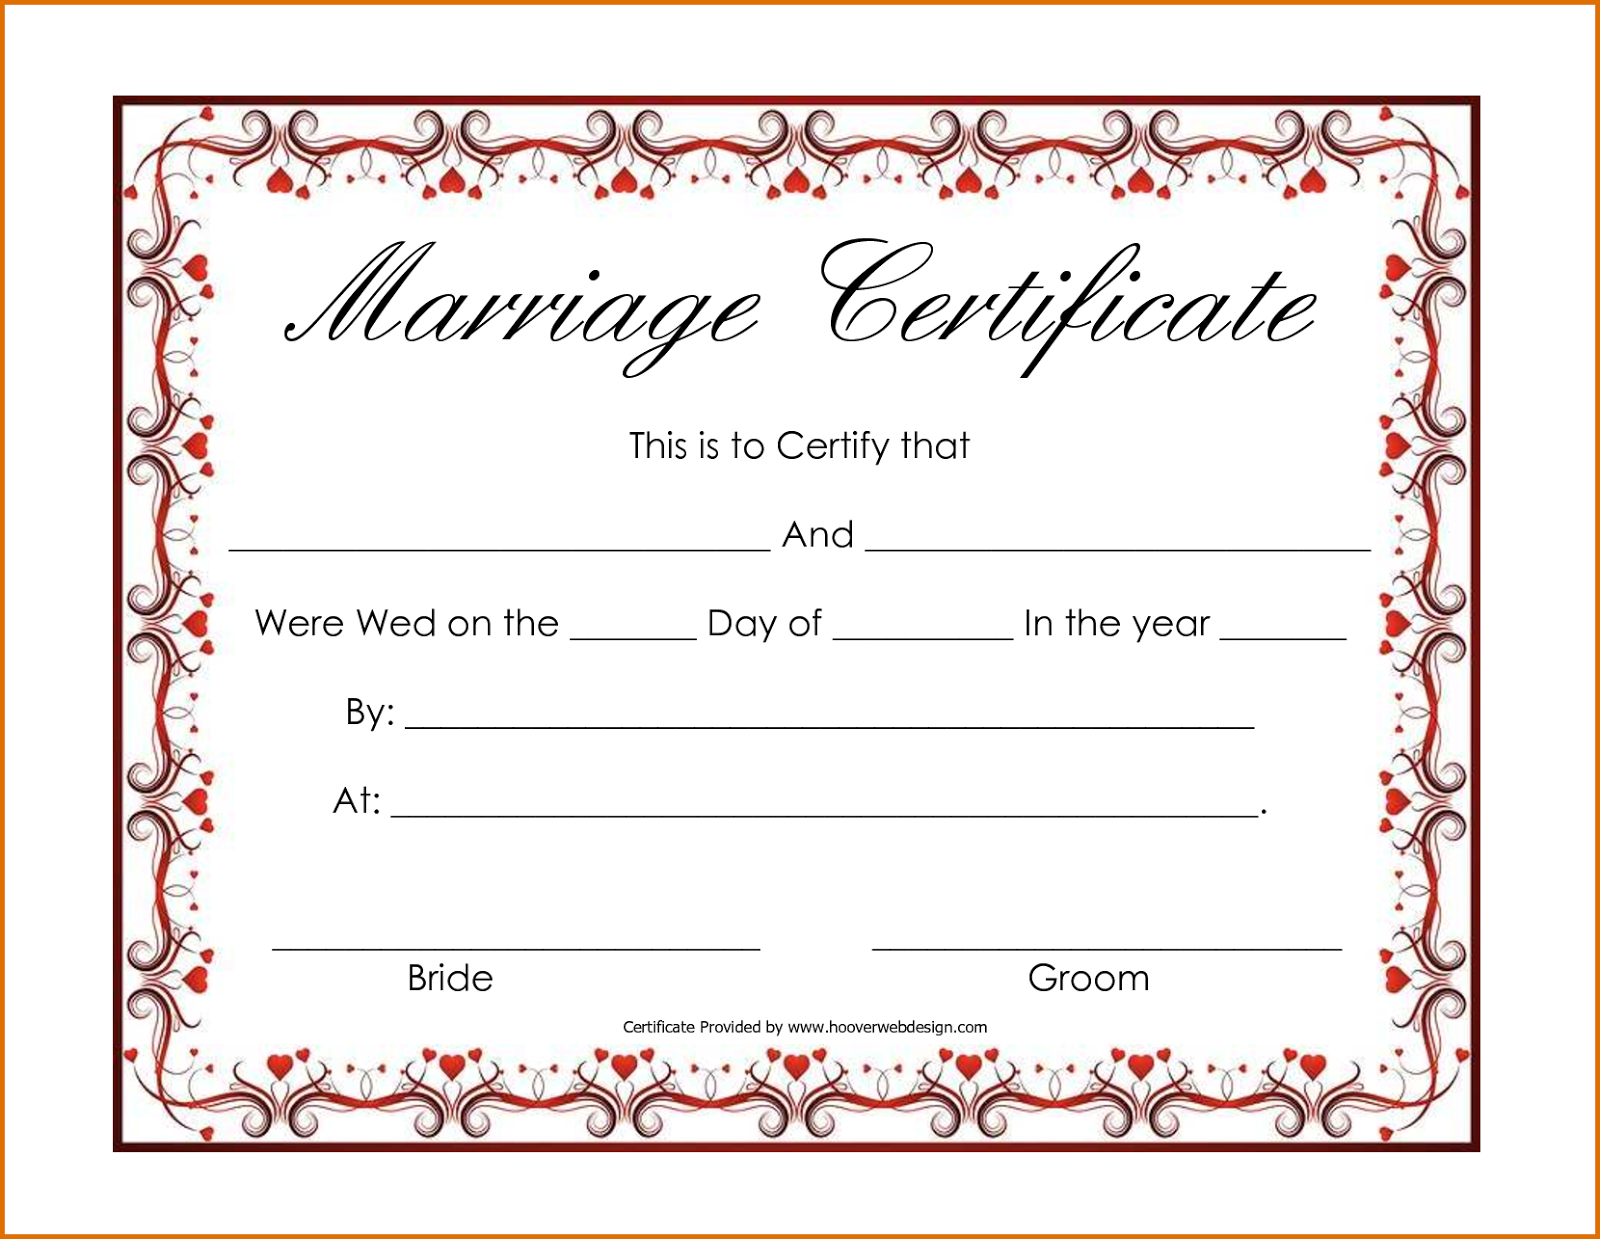 Marriage certificate printable template apa templates marriage certificate printable template 1betcityfo Image collections